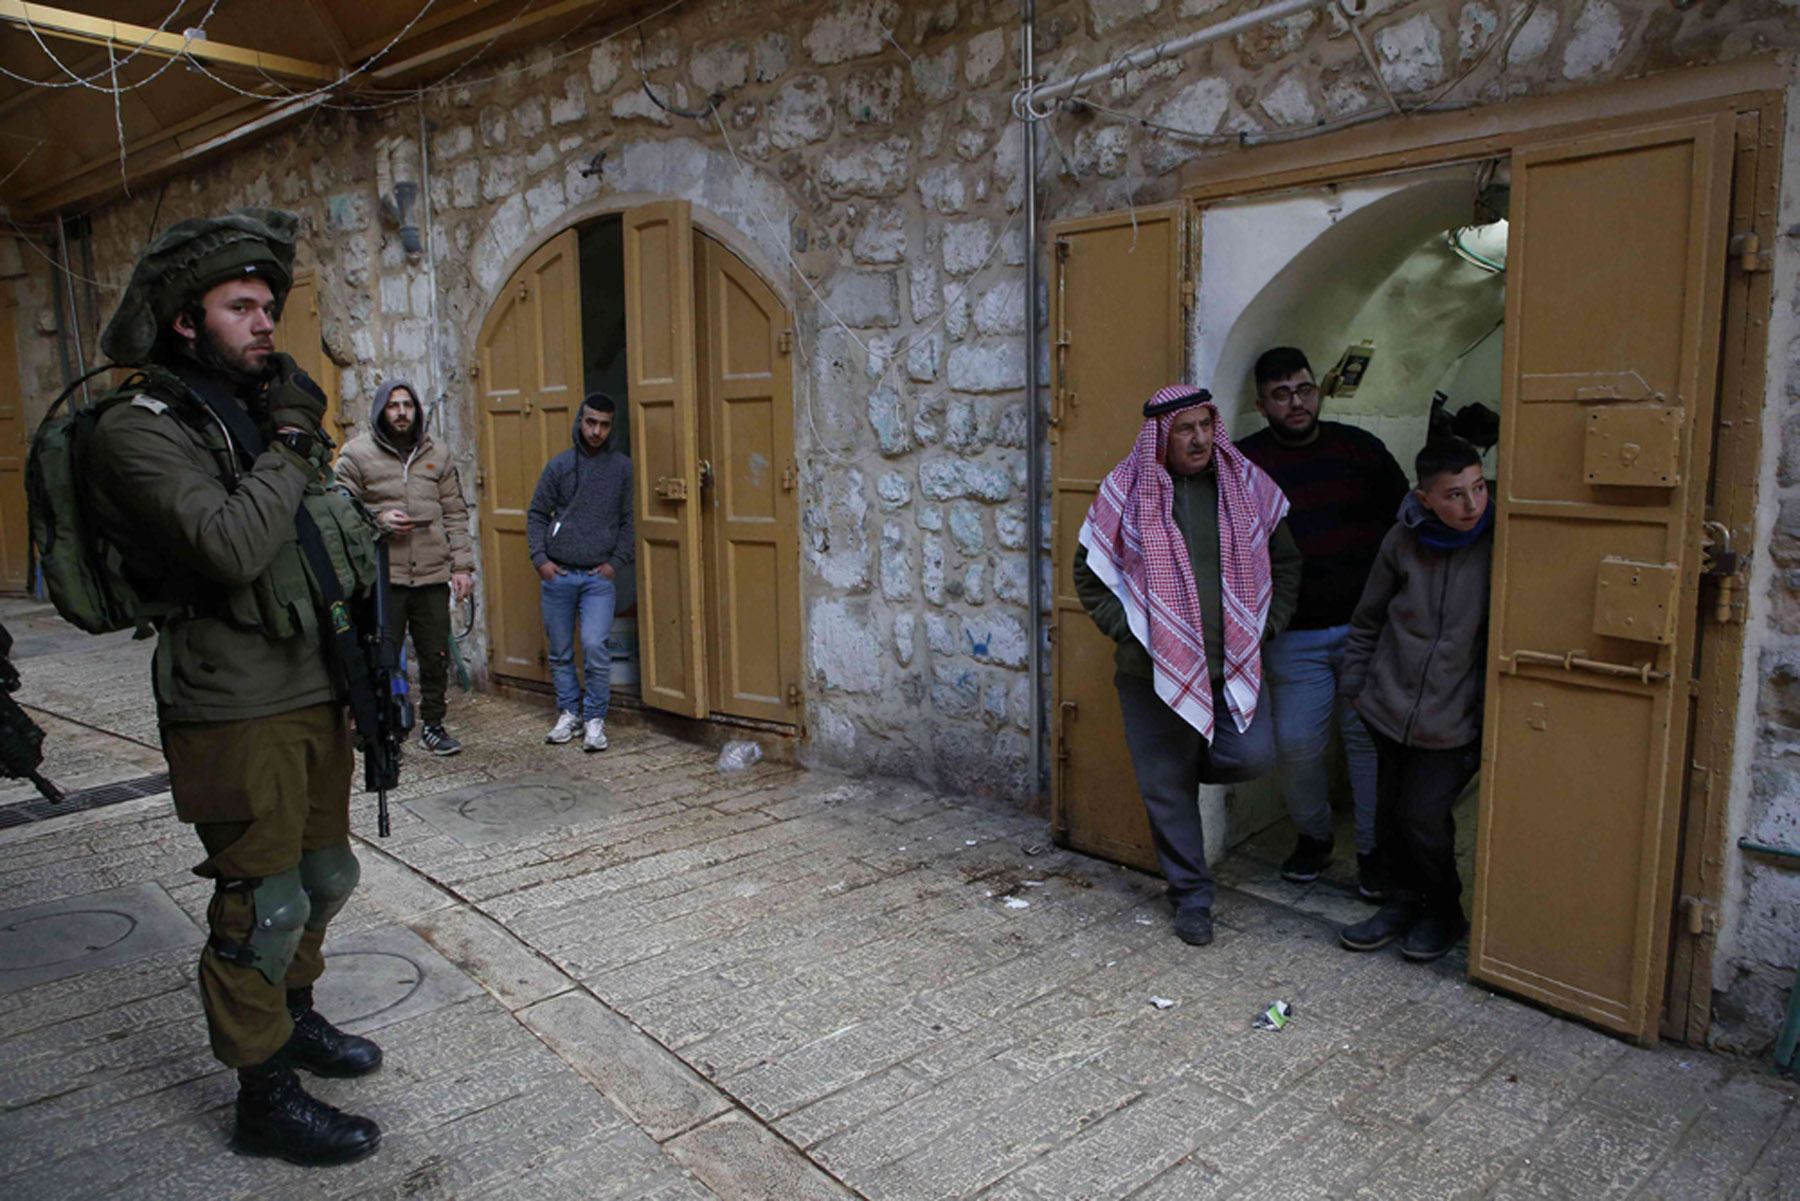 An Israeli soldier stands guard as Palestinians watch Jewish settlers (unseen) touring the Palestinian side of the old city market in Hebron, last February. (AFP)